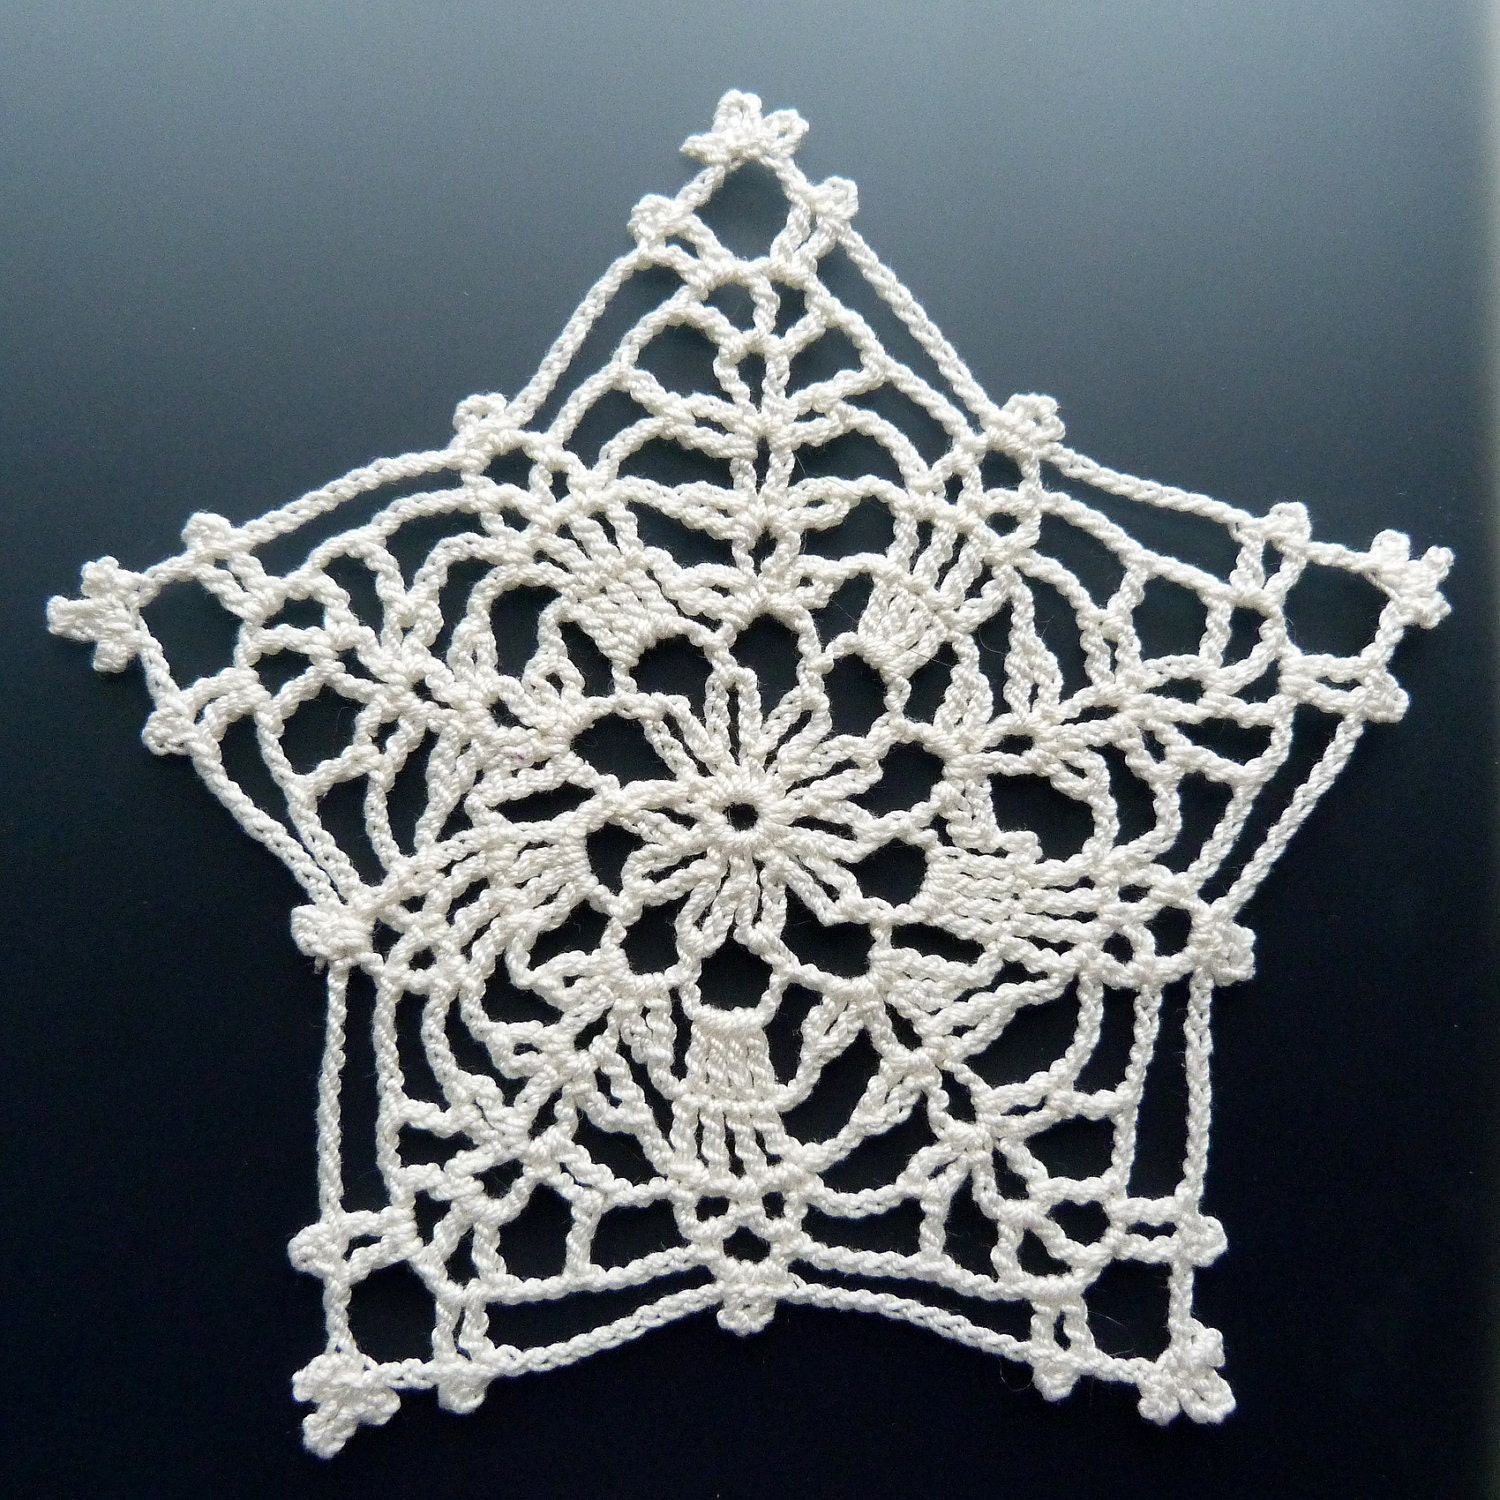 Crocheted Doily - Lonely Star